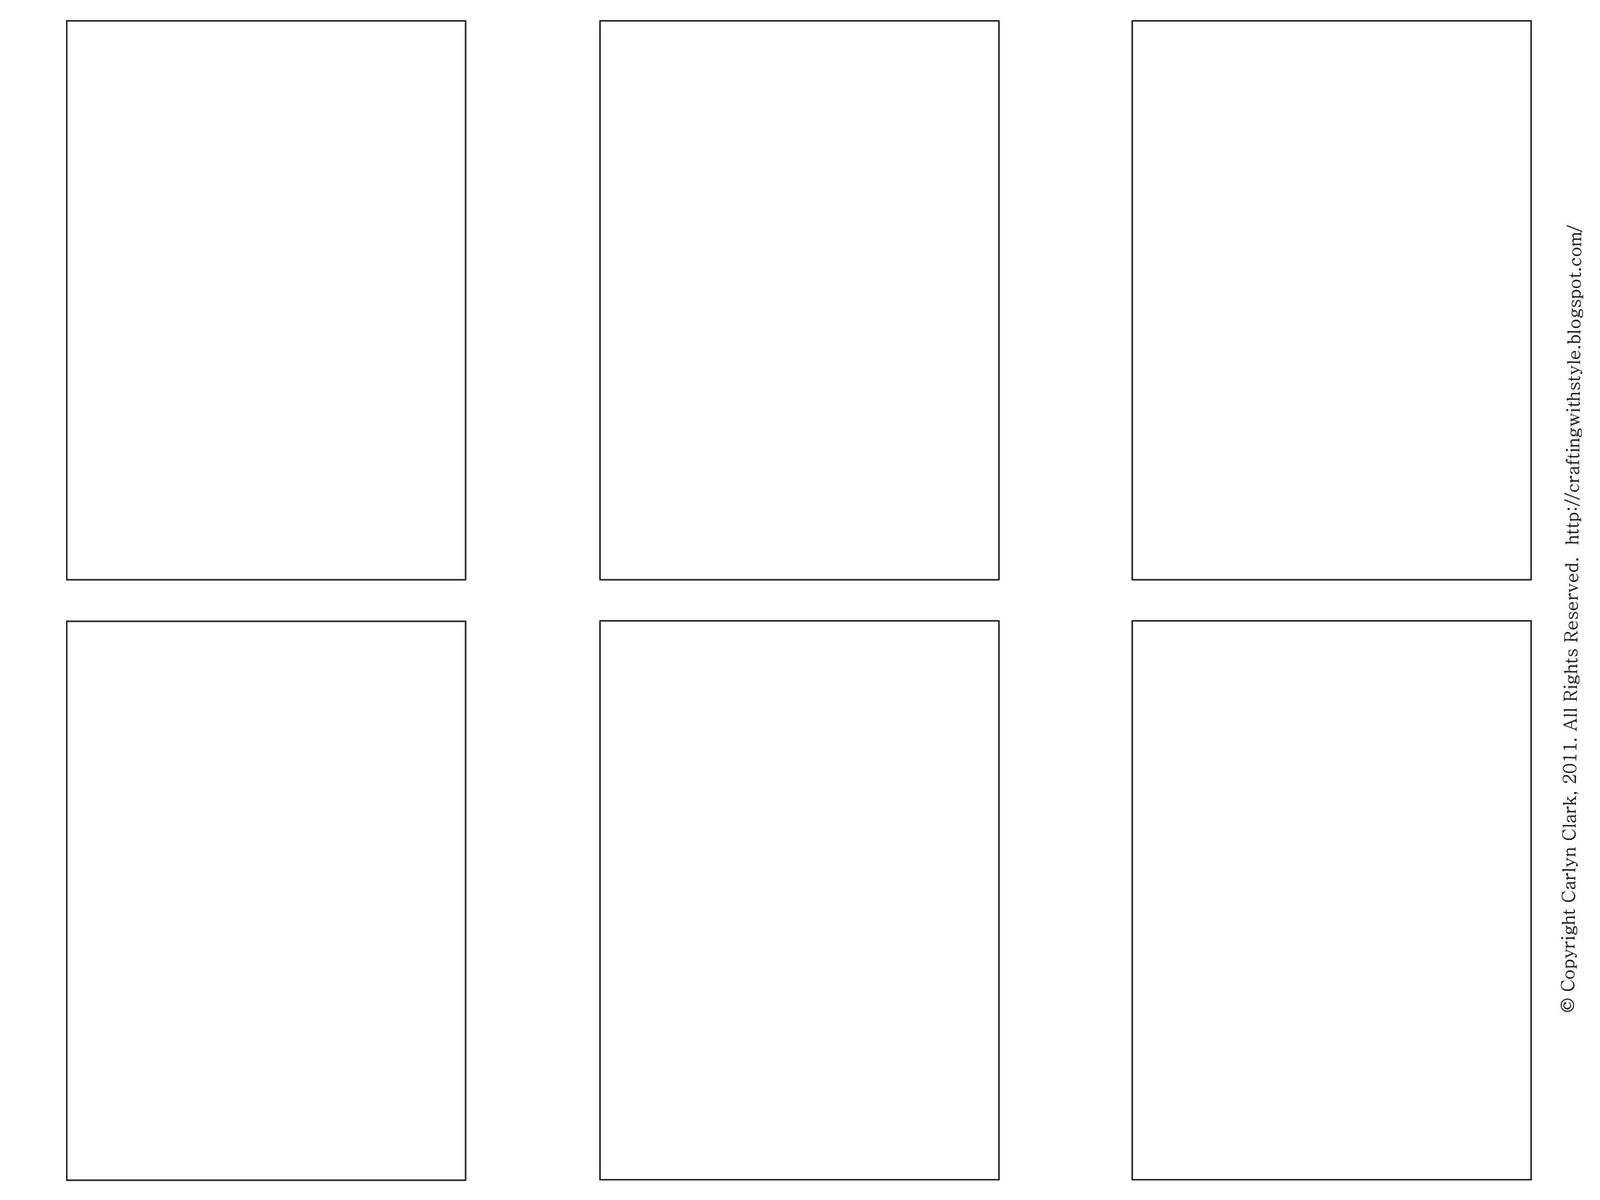 Free Blank Business Card Templates  Free Atc Templates And Artwork In Free Editable Printable Business Card Templates